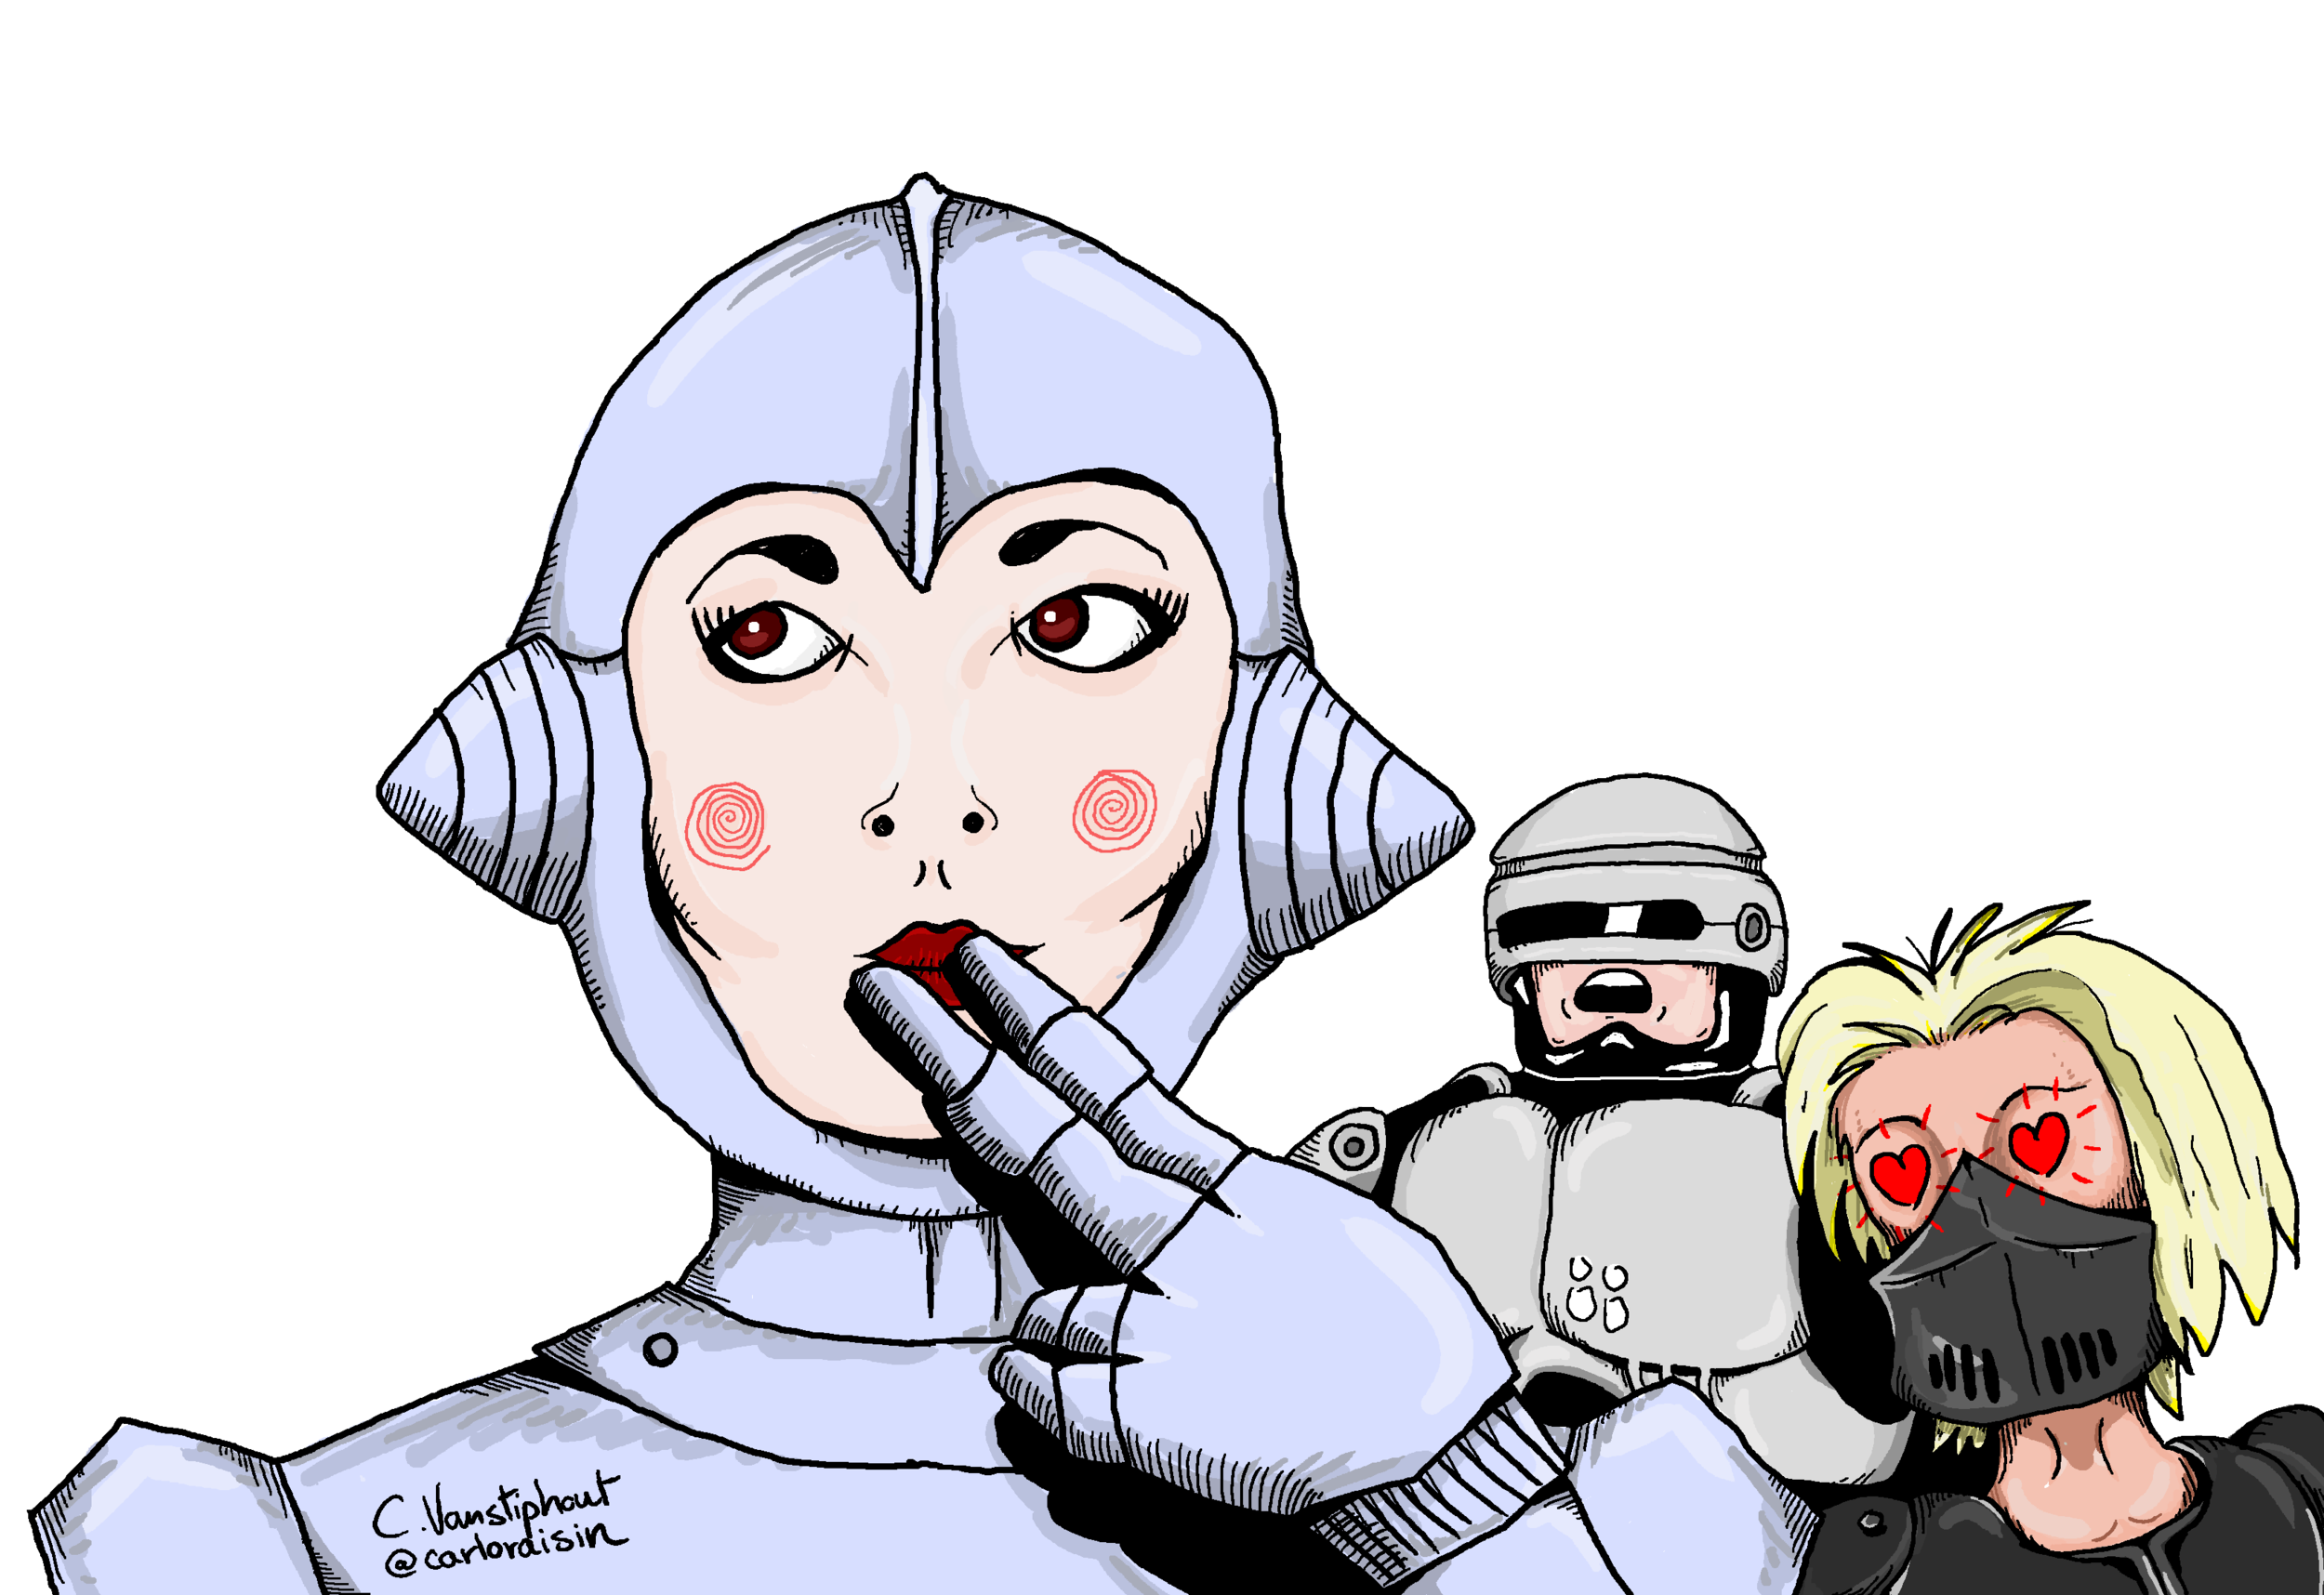 Female RoboCop Rip-offs - Get niche with Carlo as he highlights female RoboCop rip-offs. (Yes, that is totally a thing).